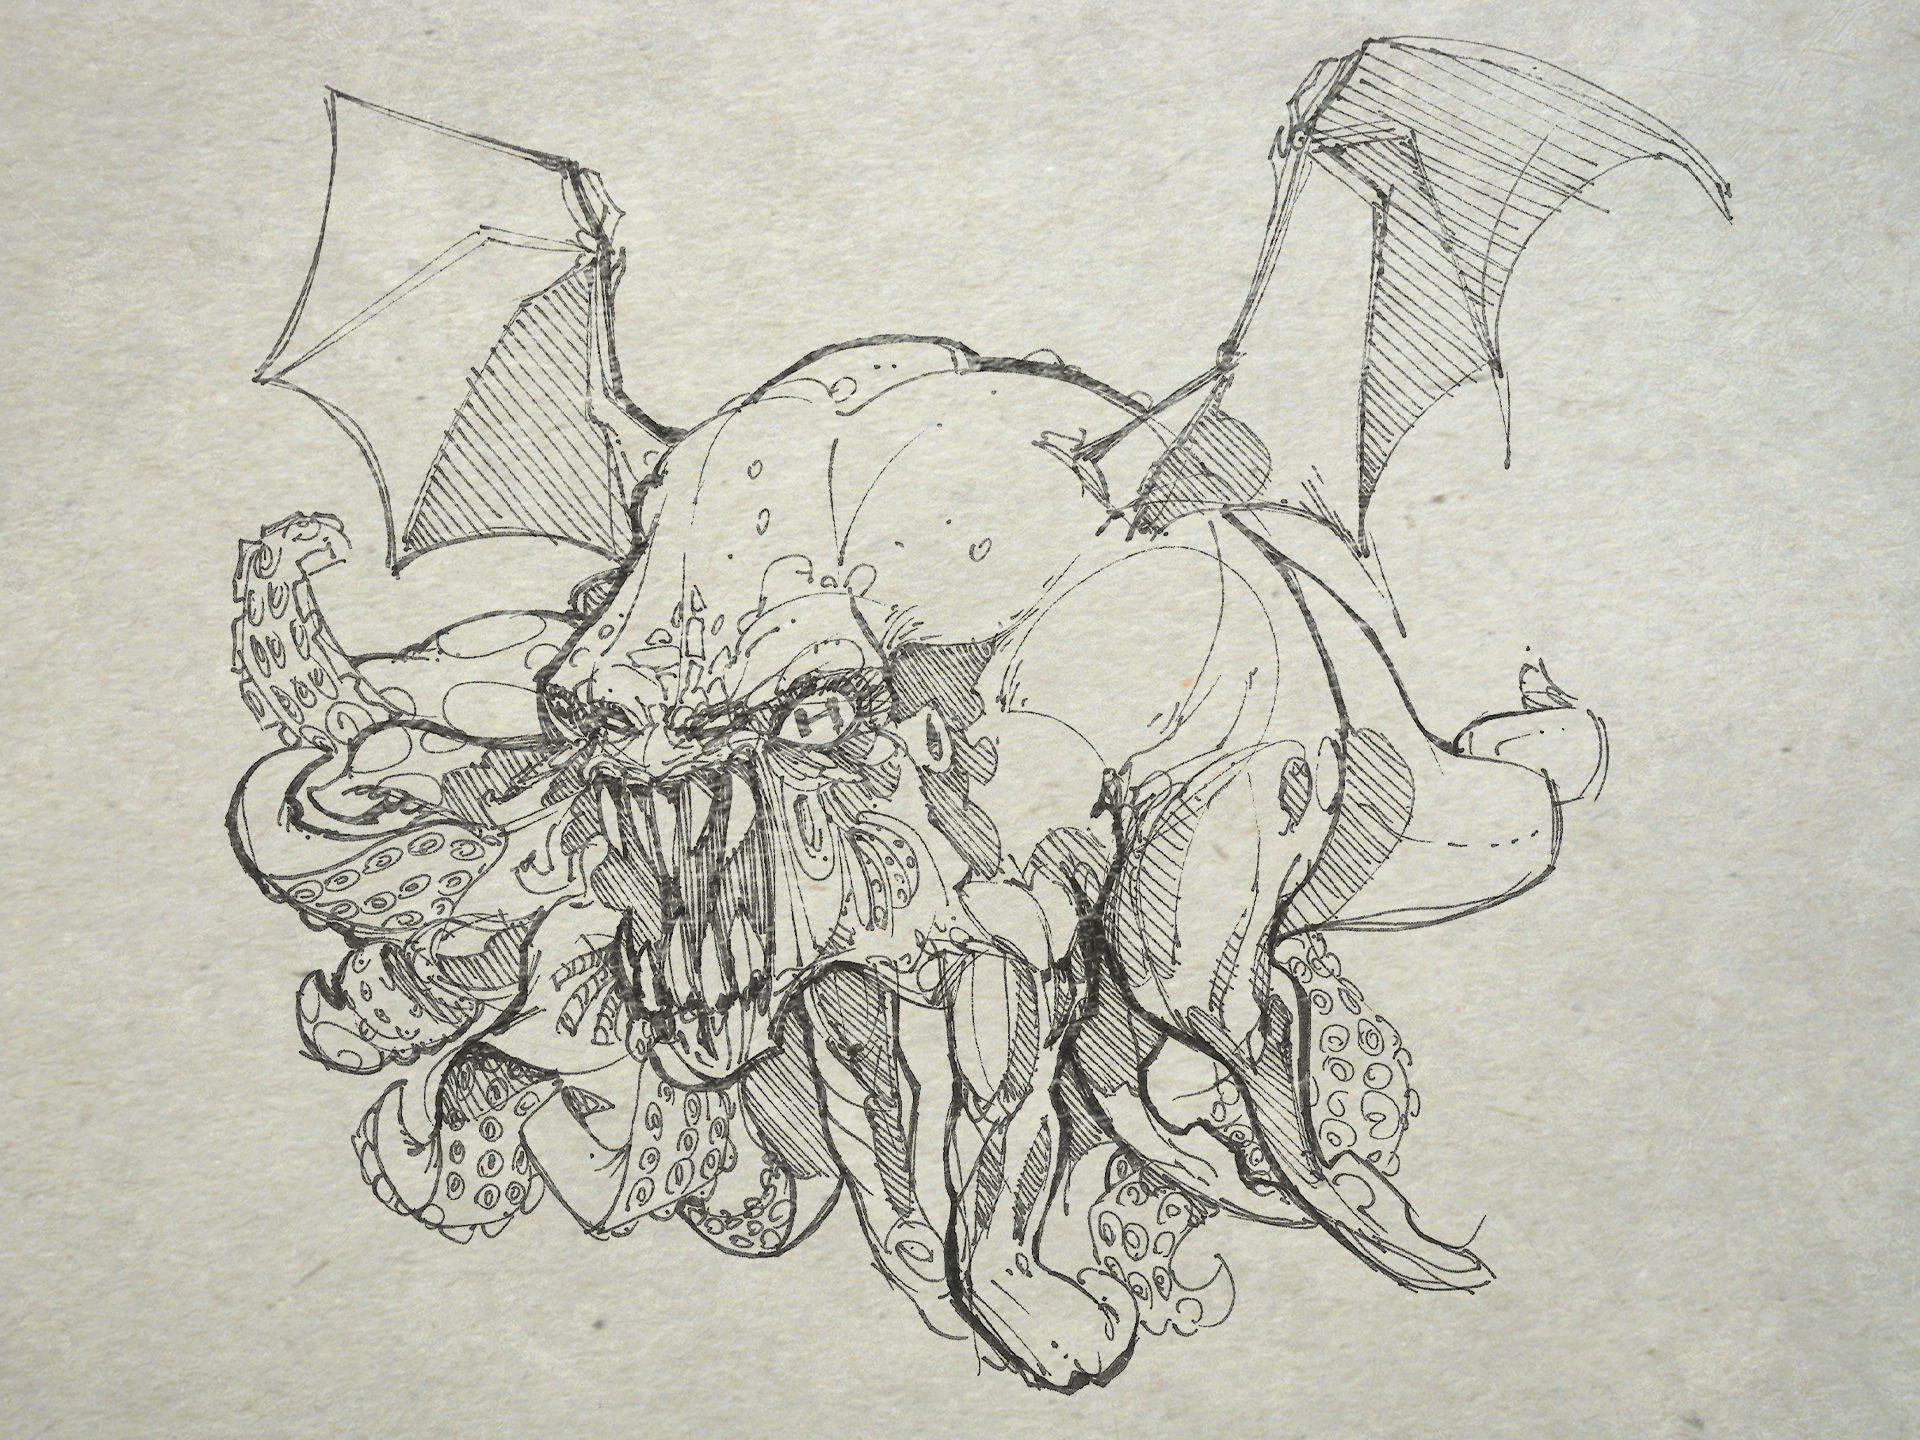 1920x1440 One Cthulhu Drawing A Day For One Year. Cthulhathon